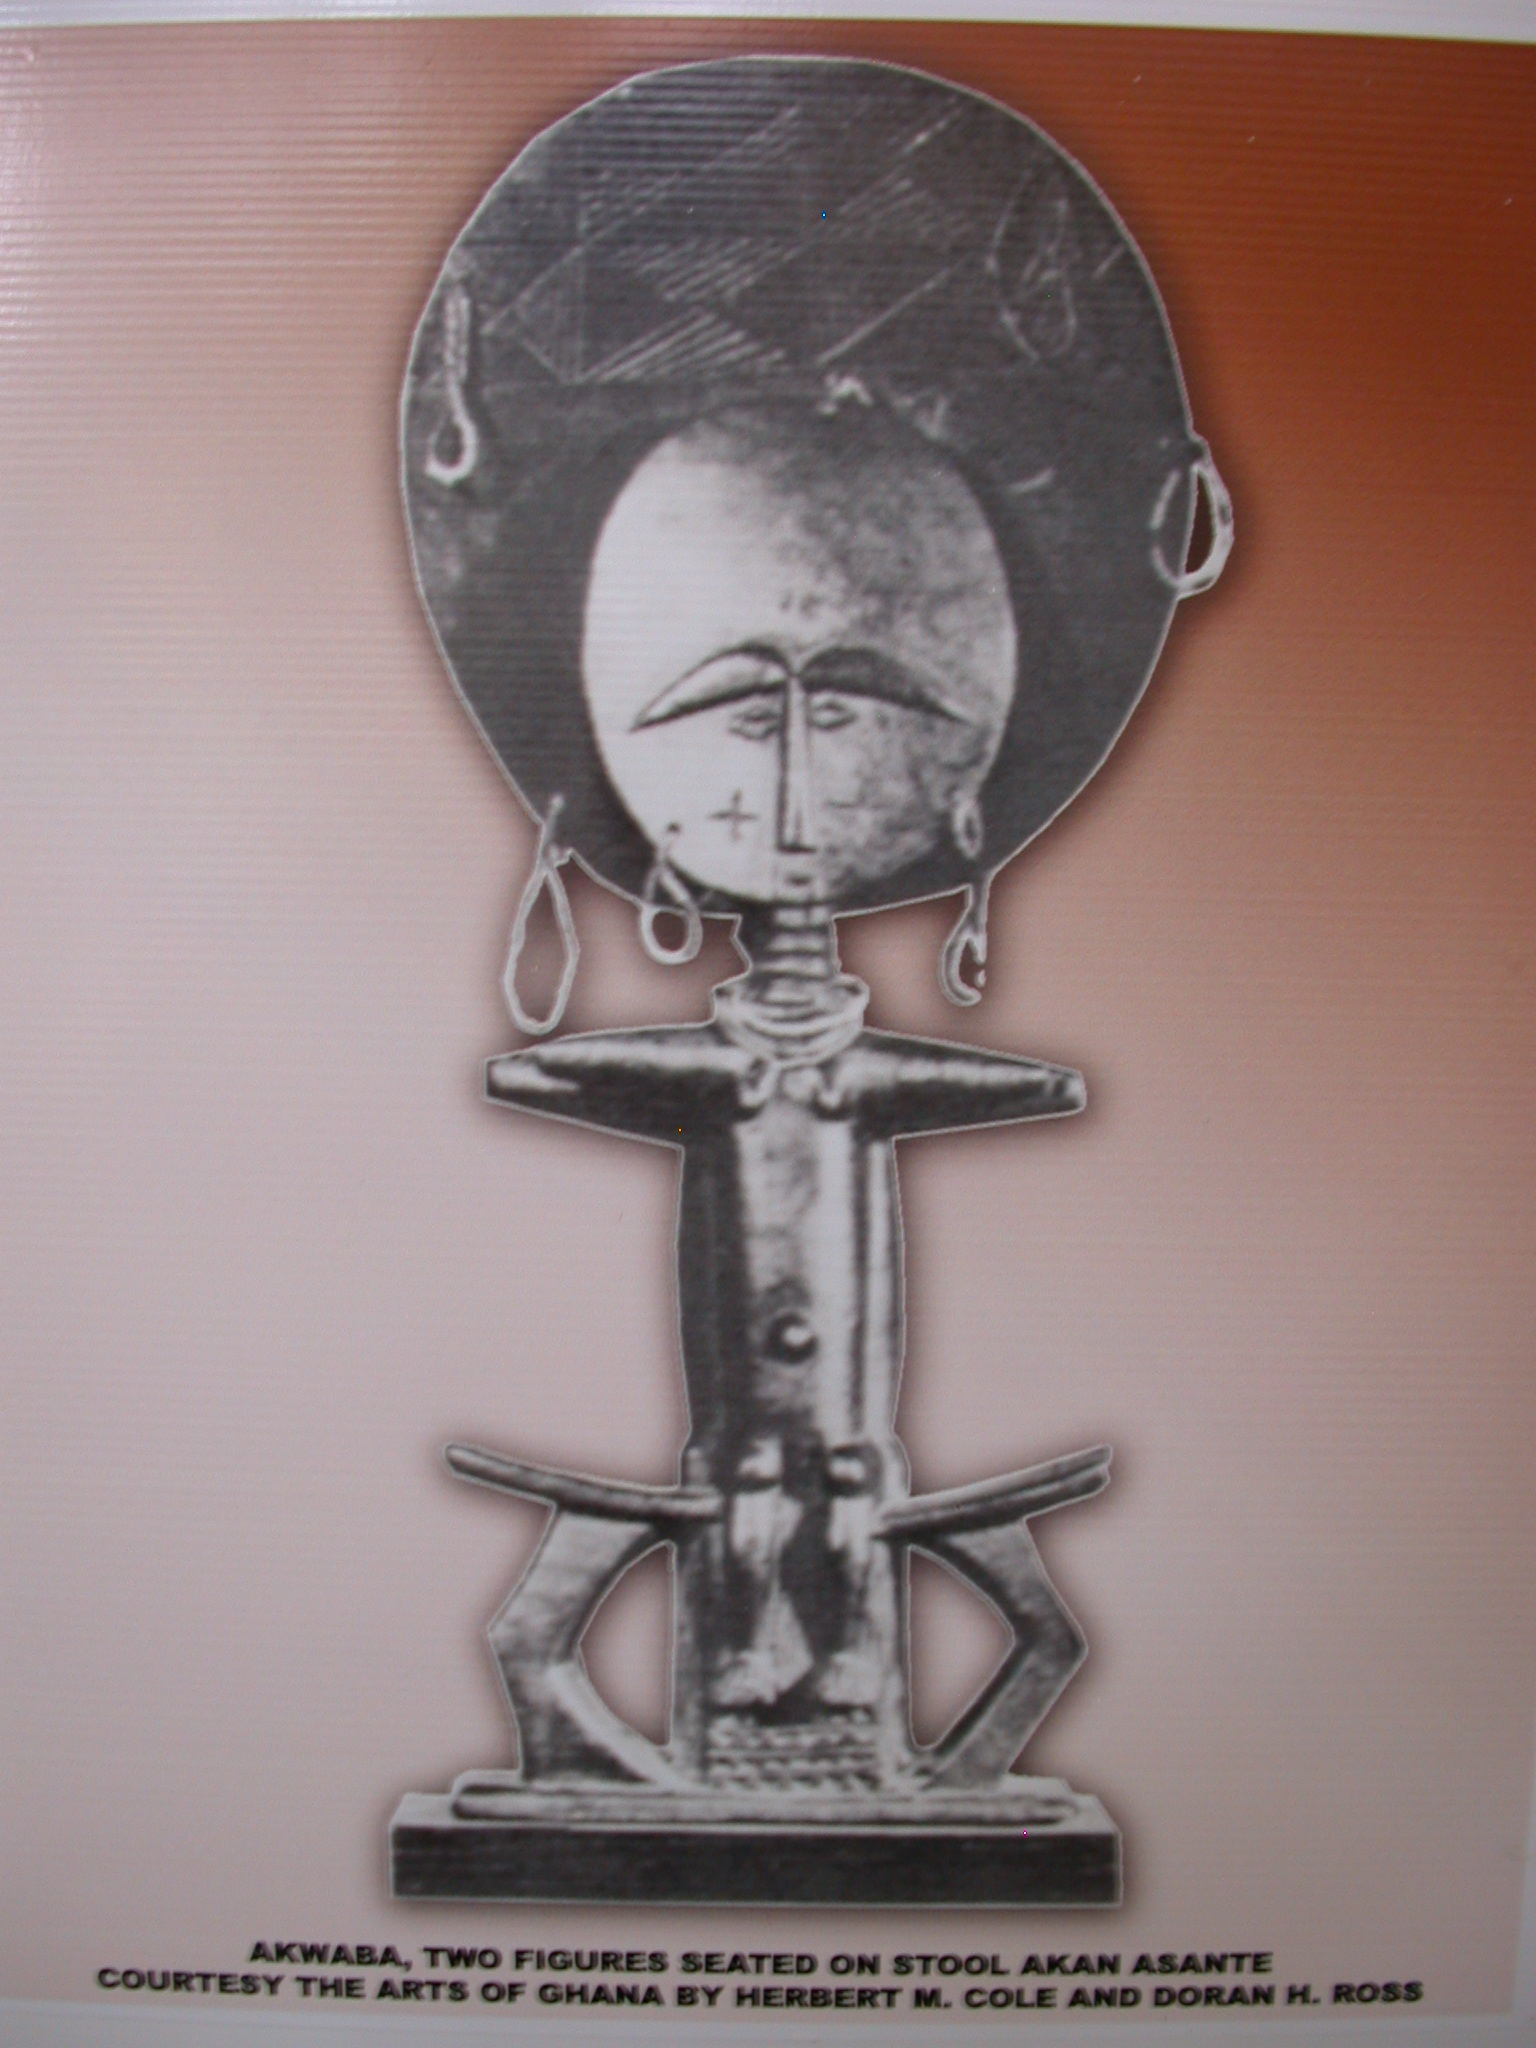 Picture of Akwaba Doll, National Museum, Accra, Ghana